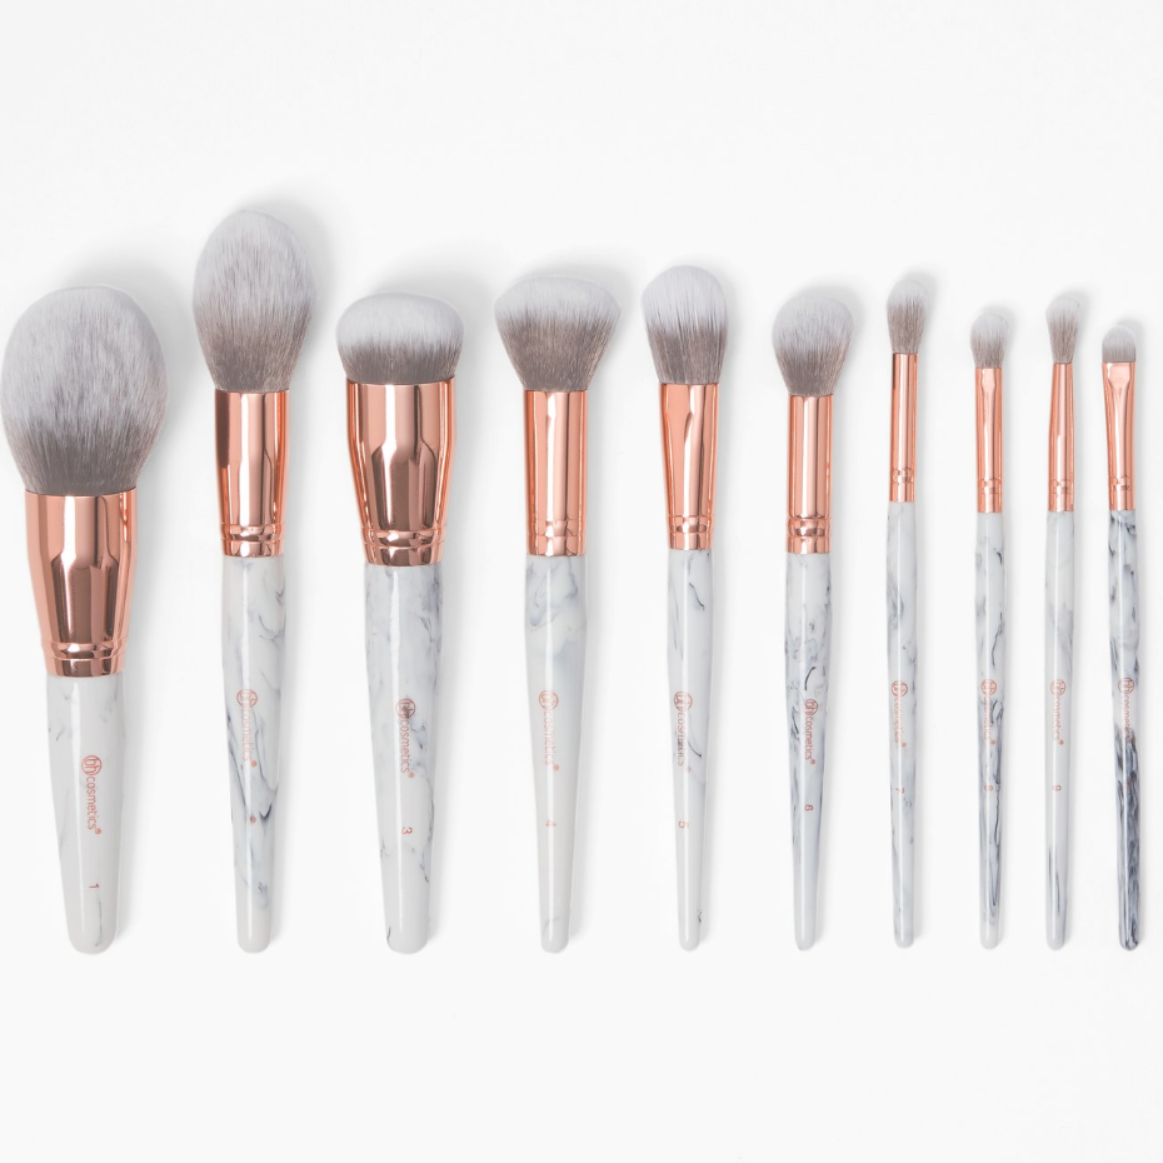 Marble Luxe 10 Piece Brush Set Bh Cosmetics Bh Cosmetics Brushes Makeup Brush Set It Cosmetics Brushes